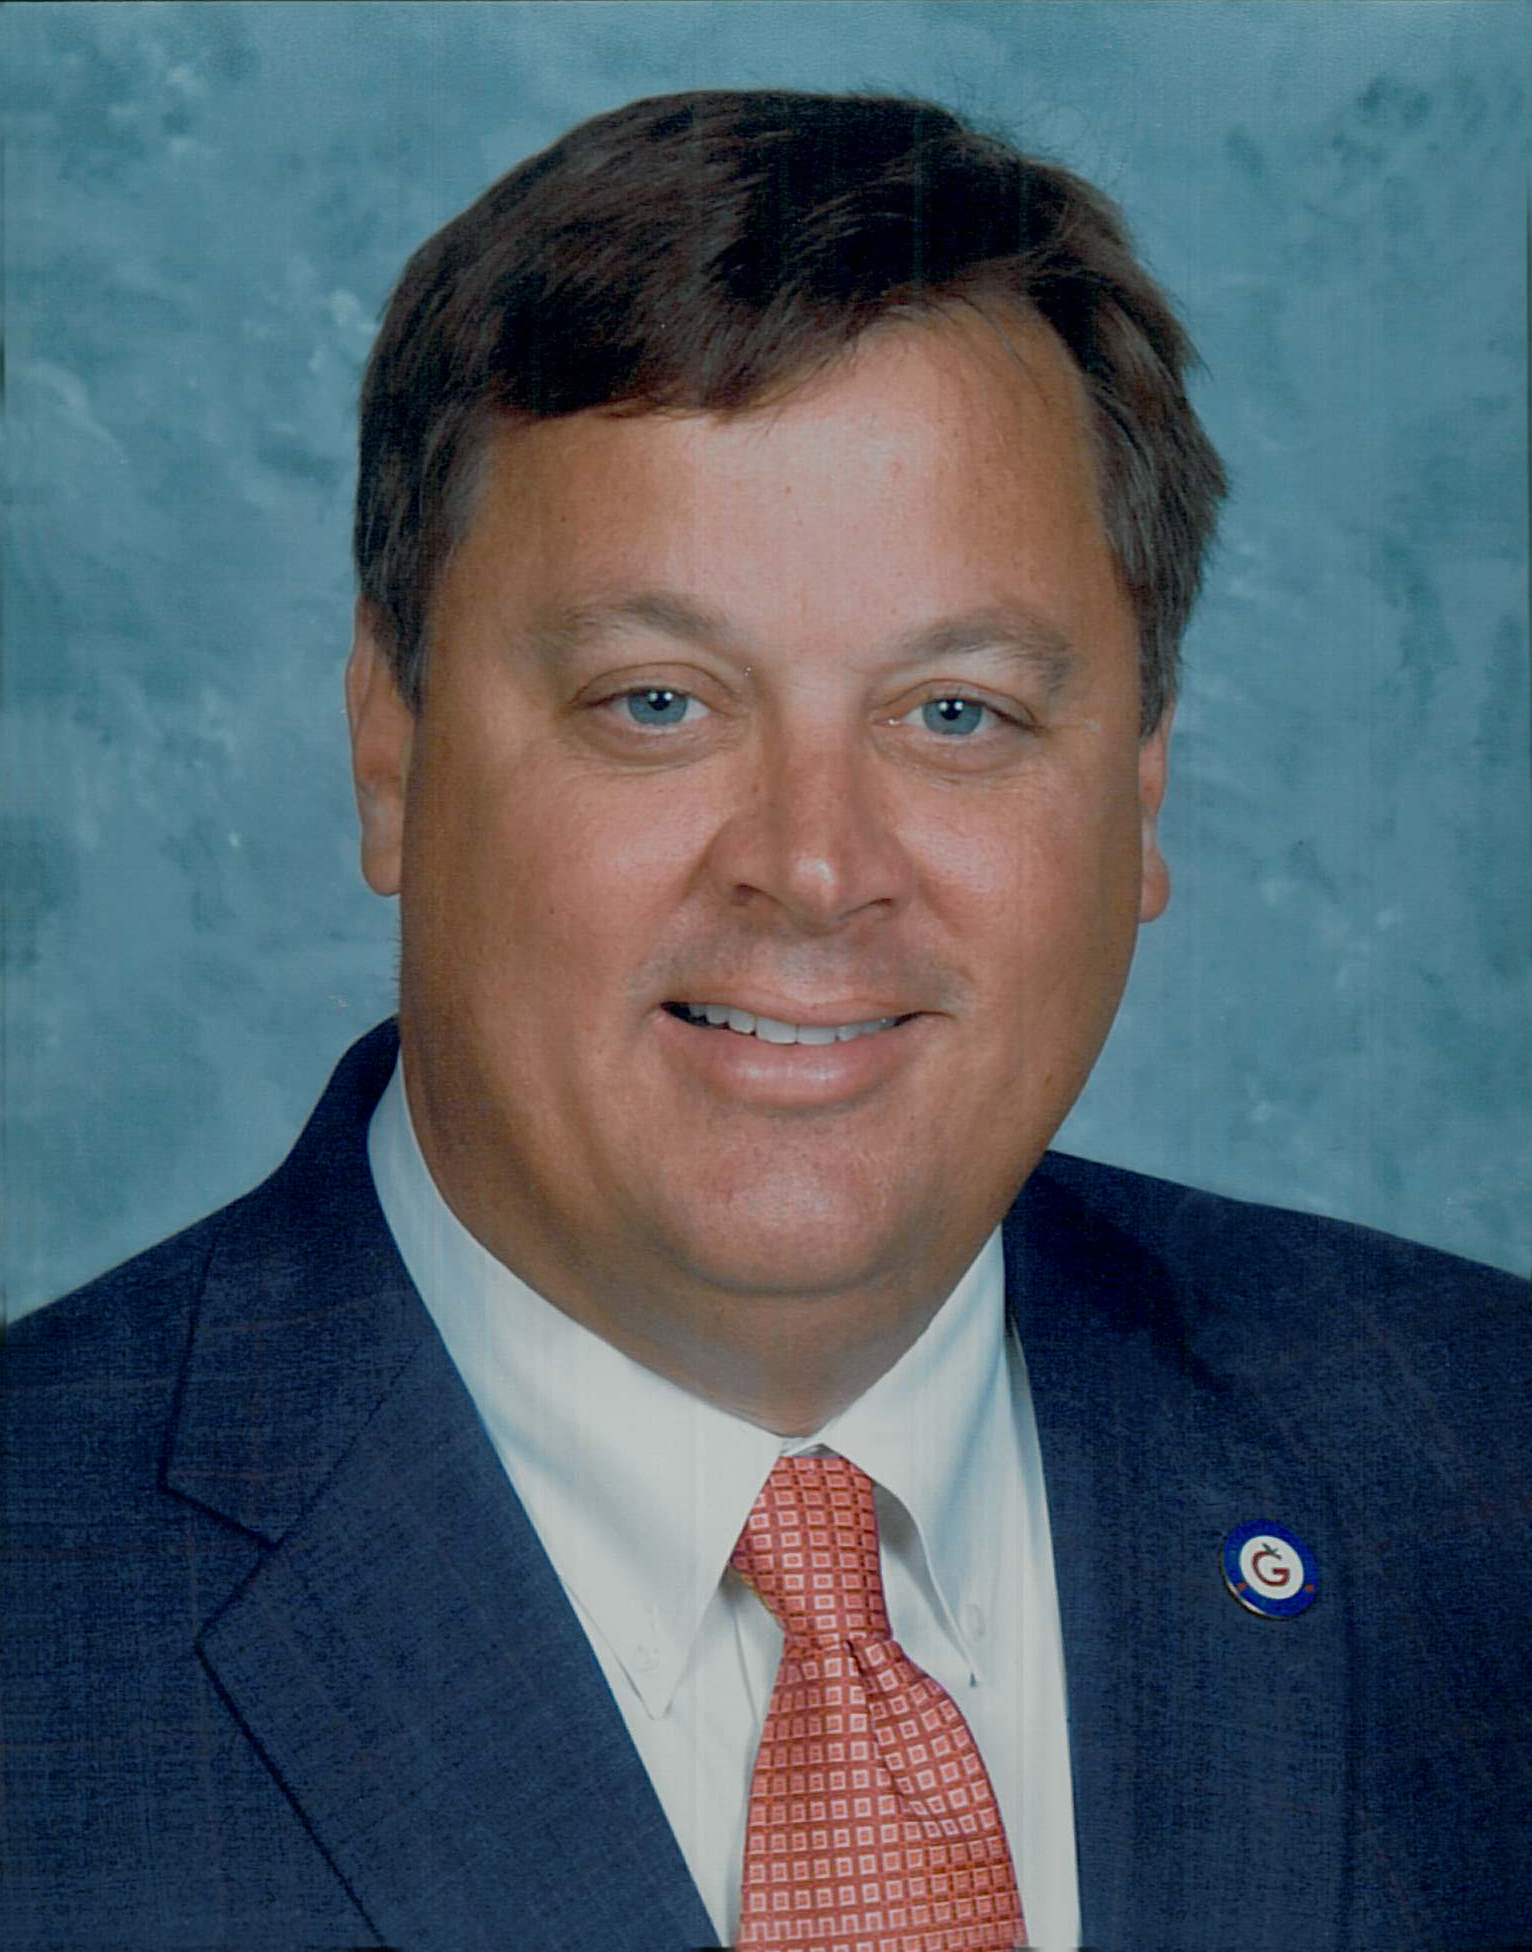 Photo of Jim Horton, the Superintendent of Gulf District Schools